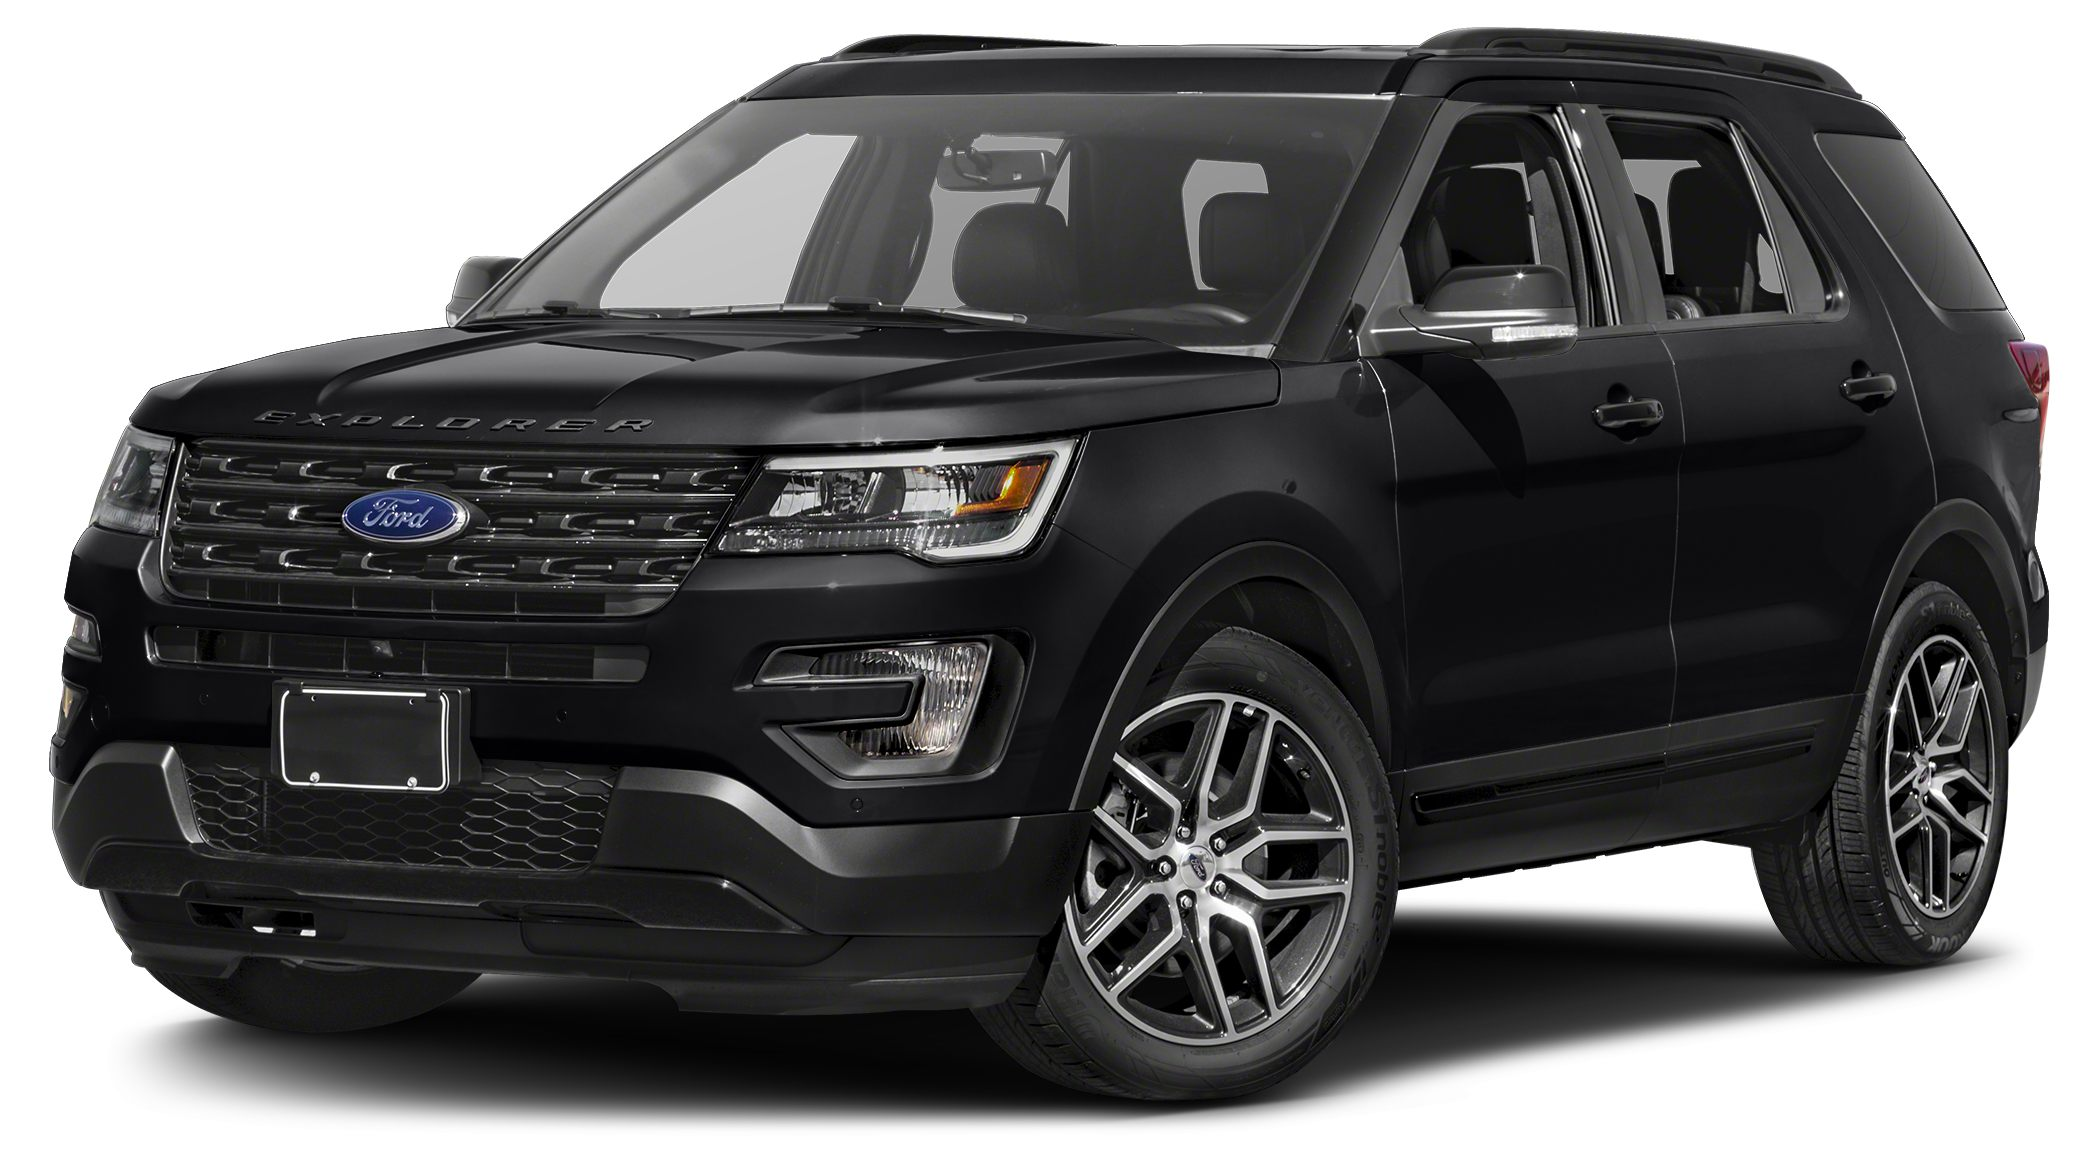 Lowest MSRP s on a Ford Explorer Tampa Bay